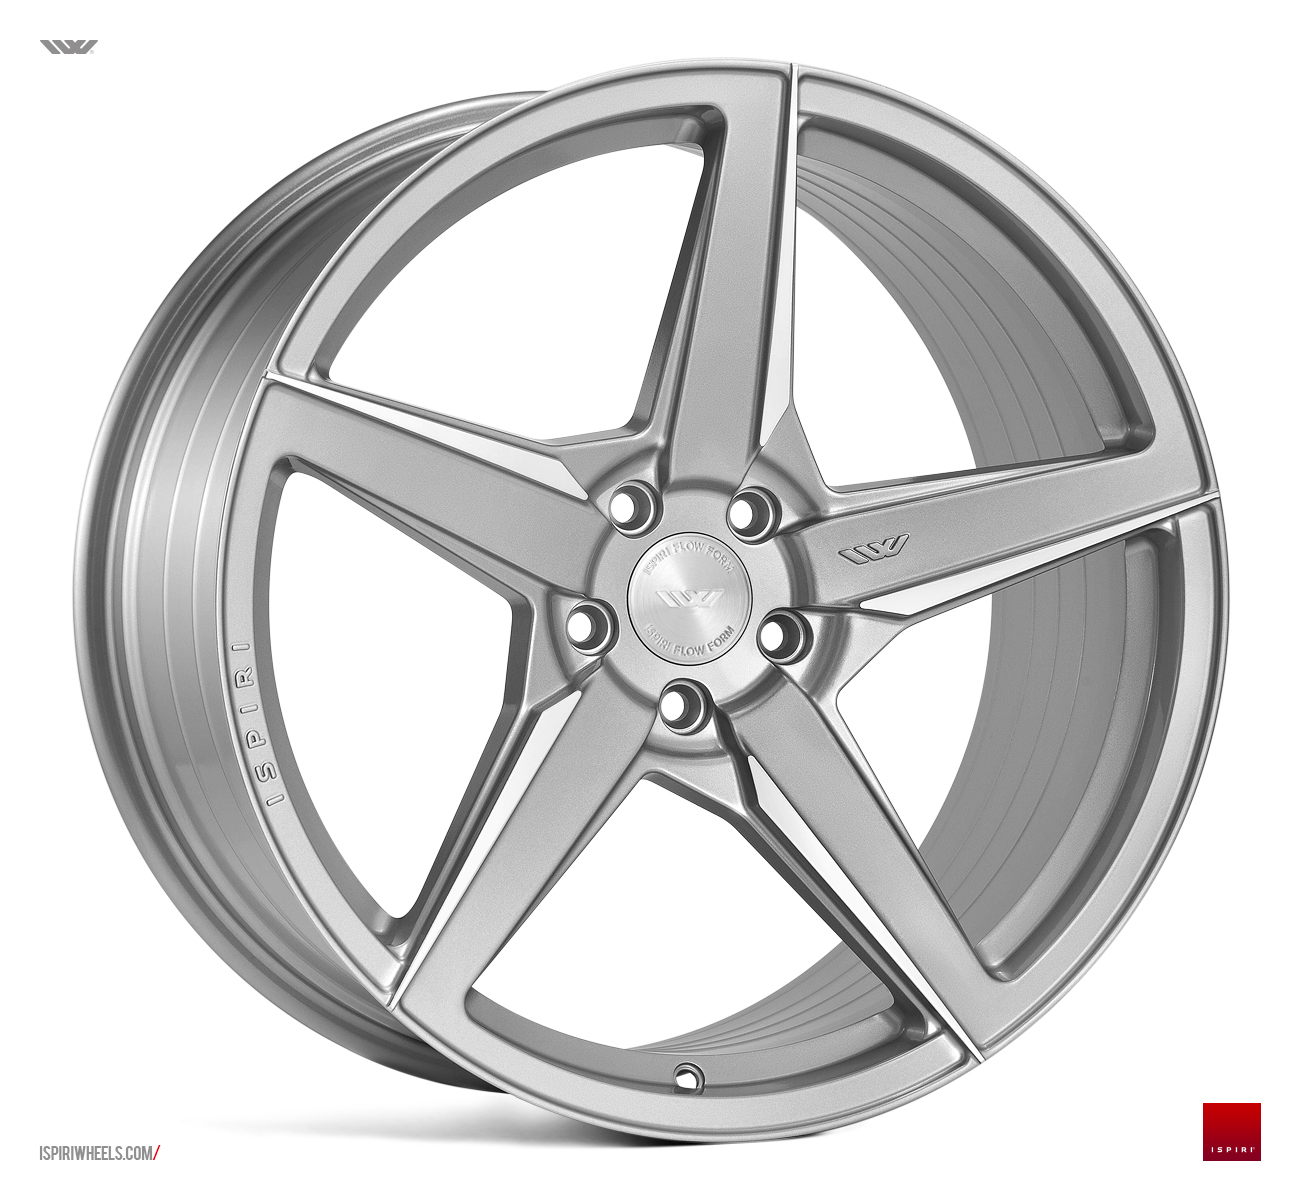 "NEW 21"" ISPIRI FFR5 5 SPOKE ALLOY WHEELS IN PURE SILVER BRUSHED, WITH WIDER 10.5"" REAR"